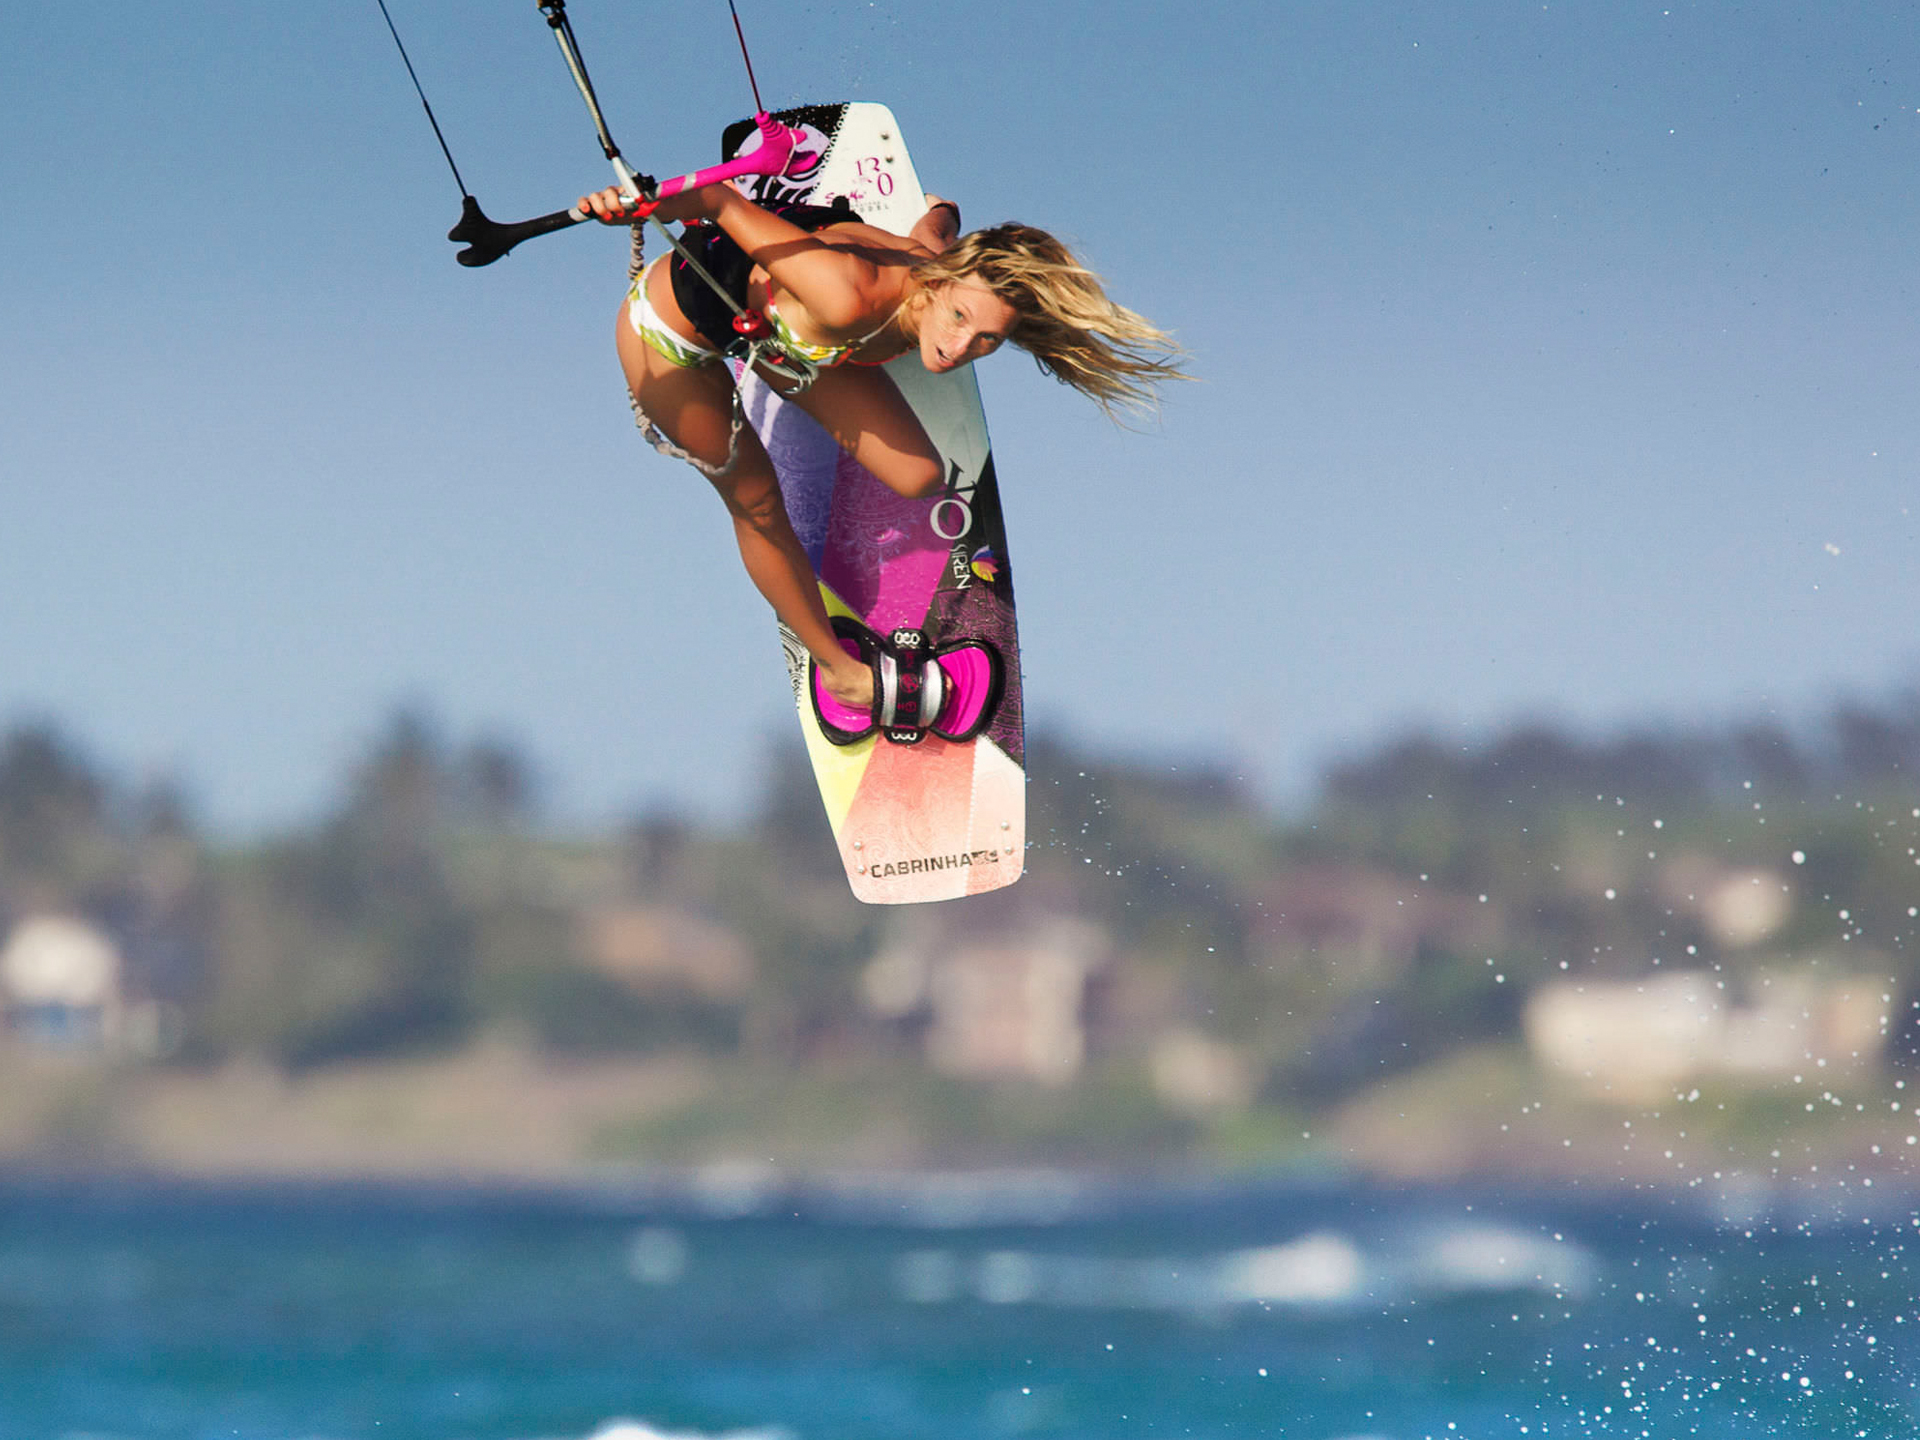 kitesurf wallpaper image - Susi Mai showing how it's done. - in resolution: Standard 4:3 1920 X 1440